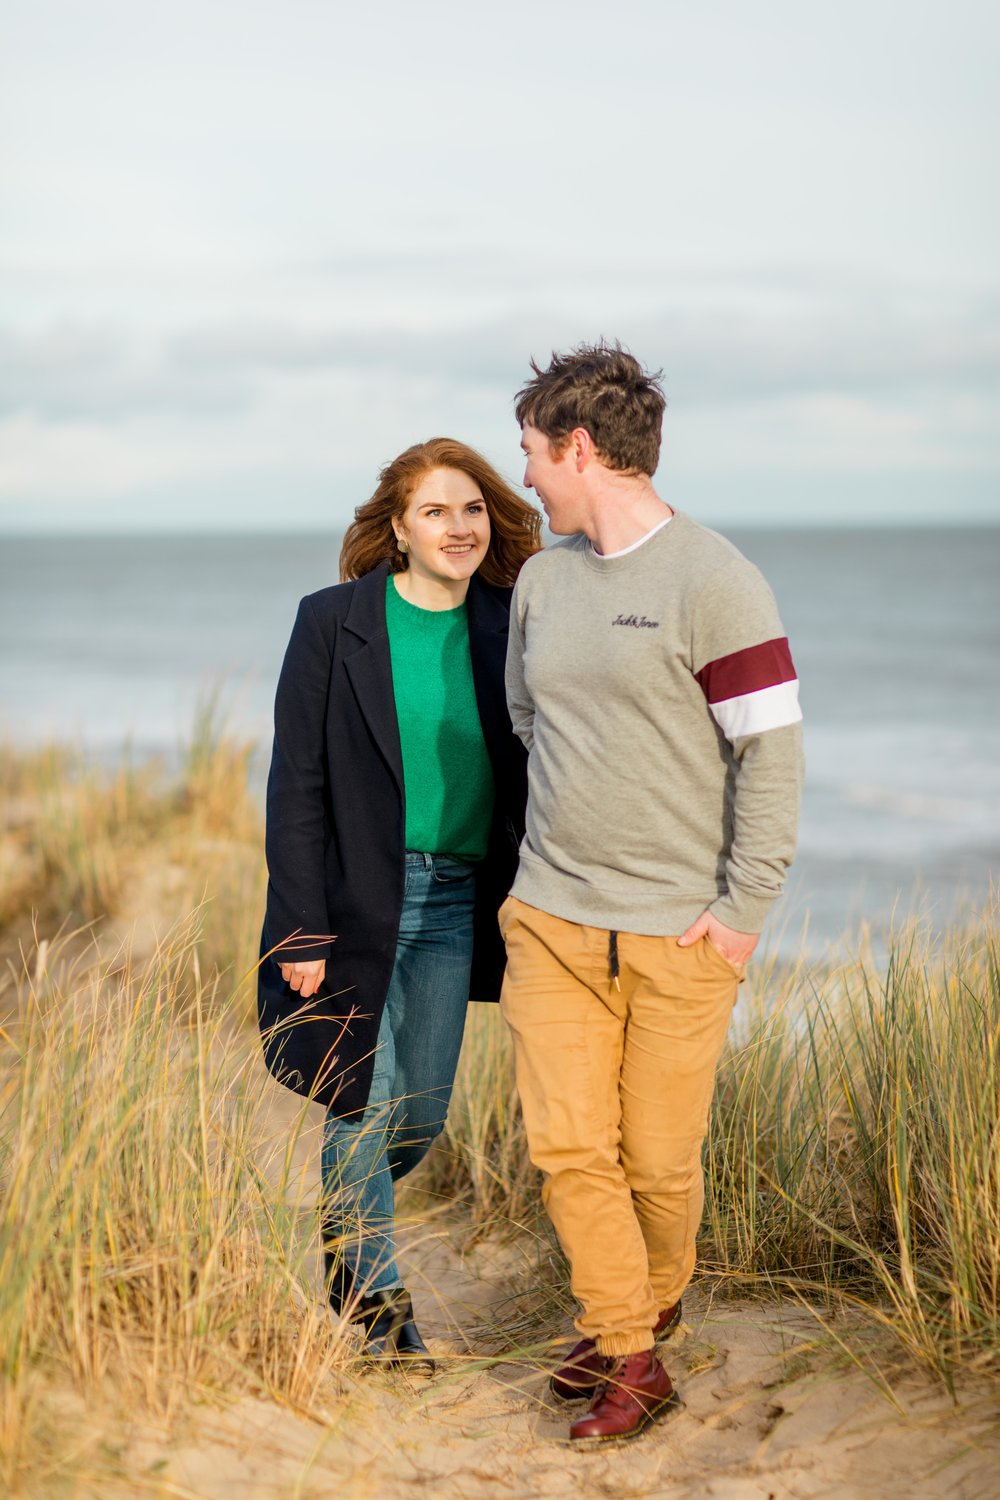 an engaged couple walking on a sandy beach in ireland brittas bay holding hands smiling looking at each other wearing a black knee length coat and khaki chinos